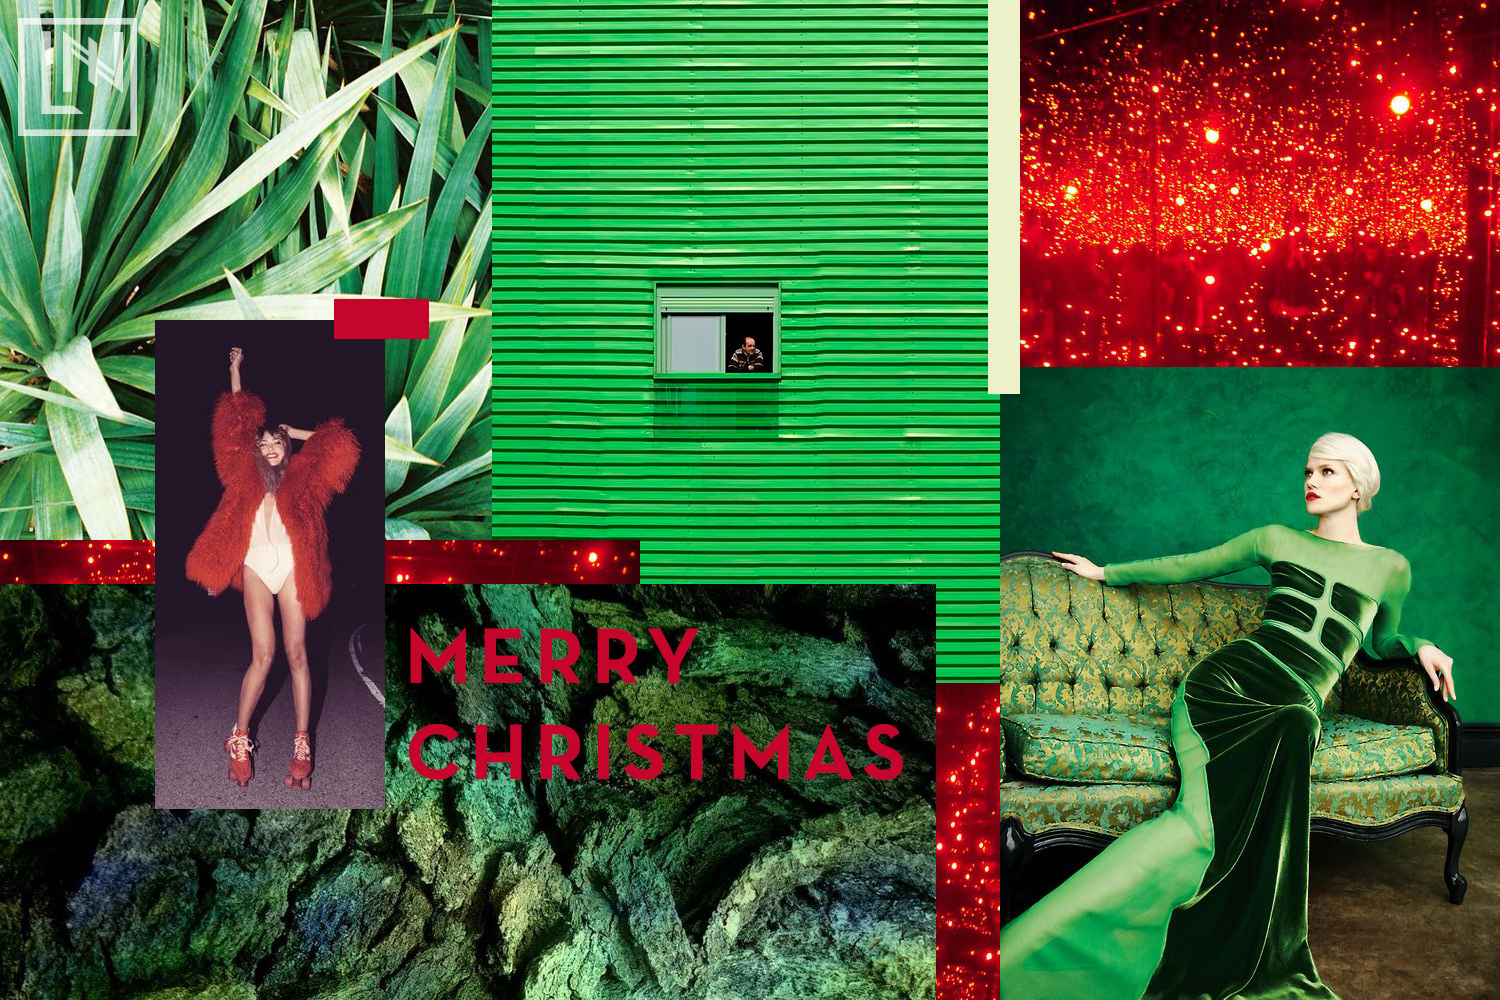 Red + green collage by Liz Nehdi Studio. Image credits below